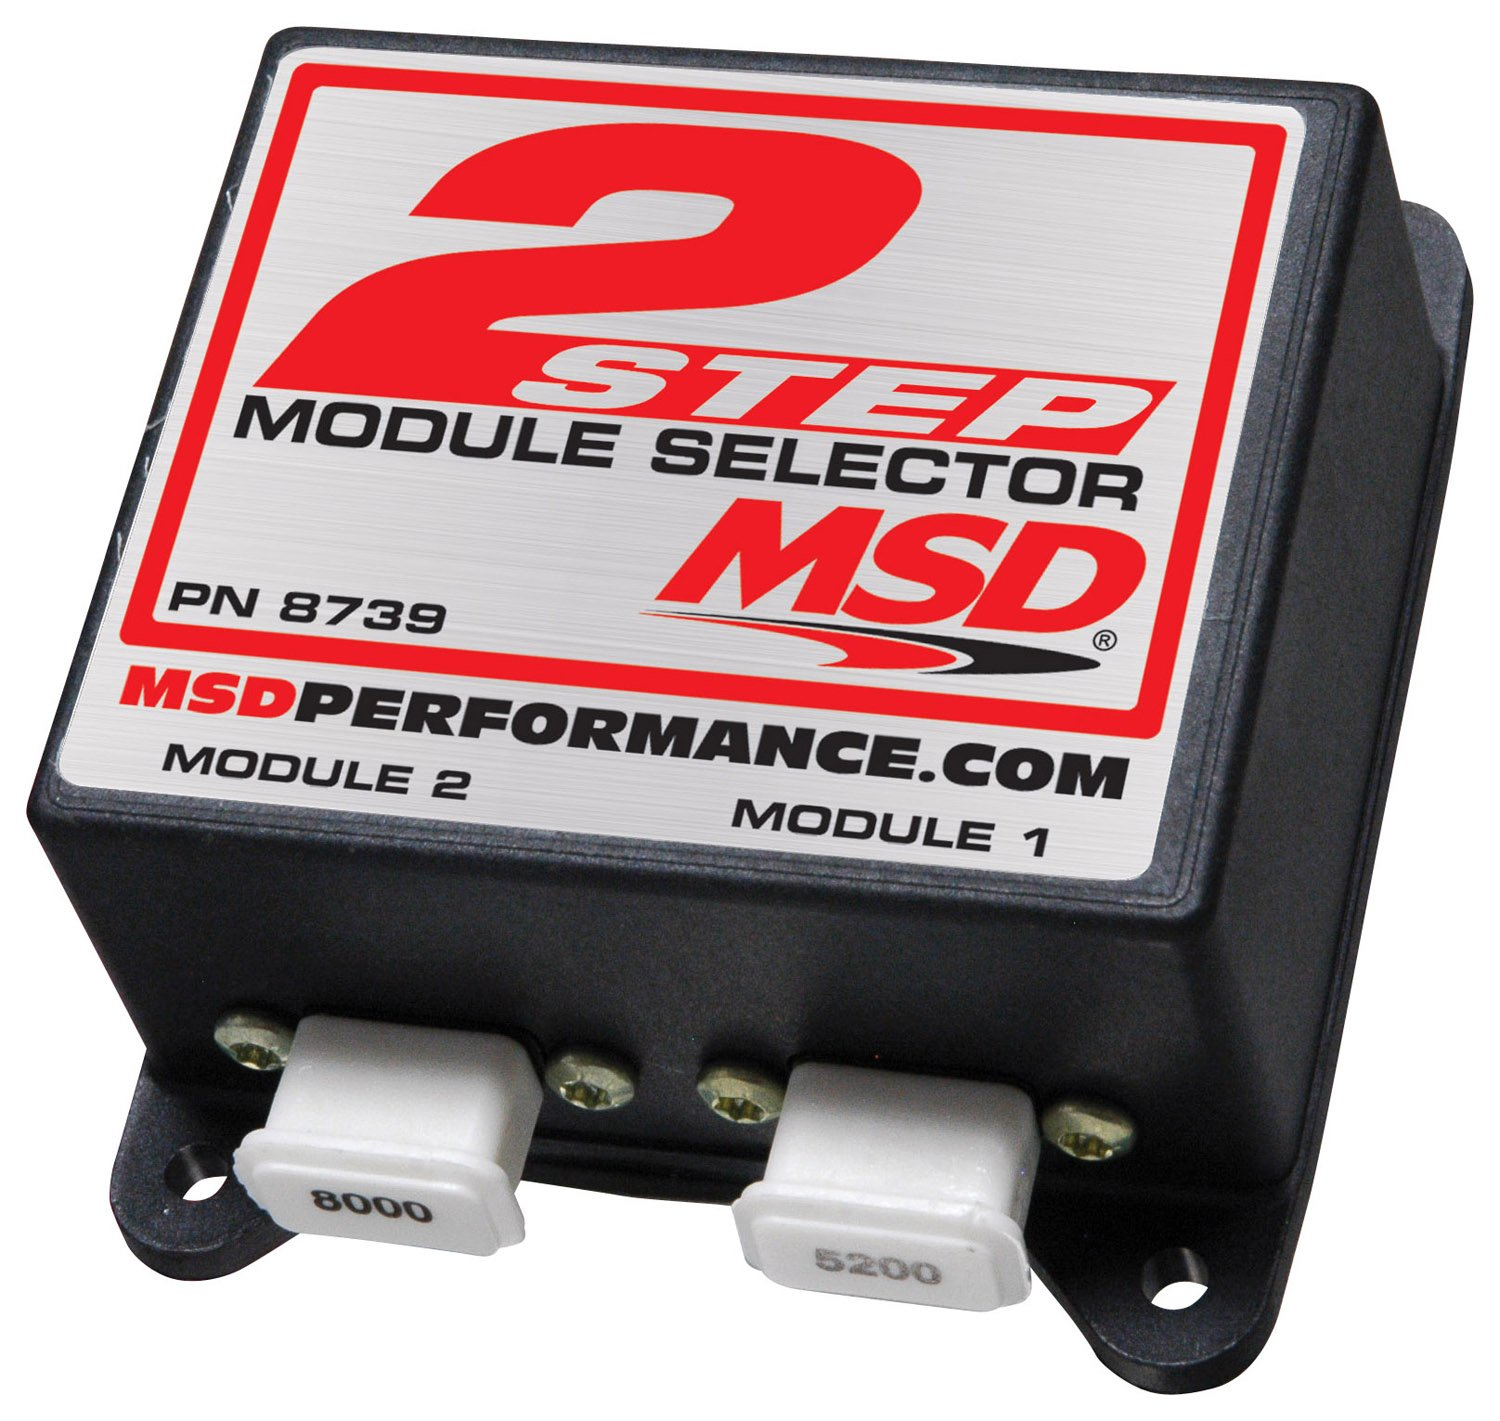 msd 8739 two step module selector msd performance products 8739 two step module selector image